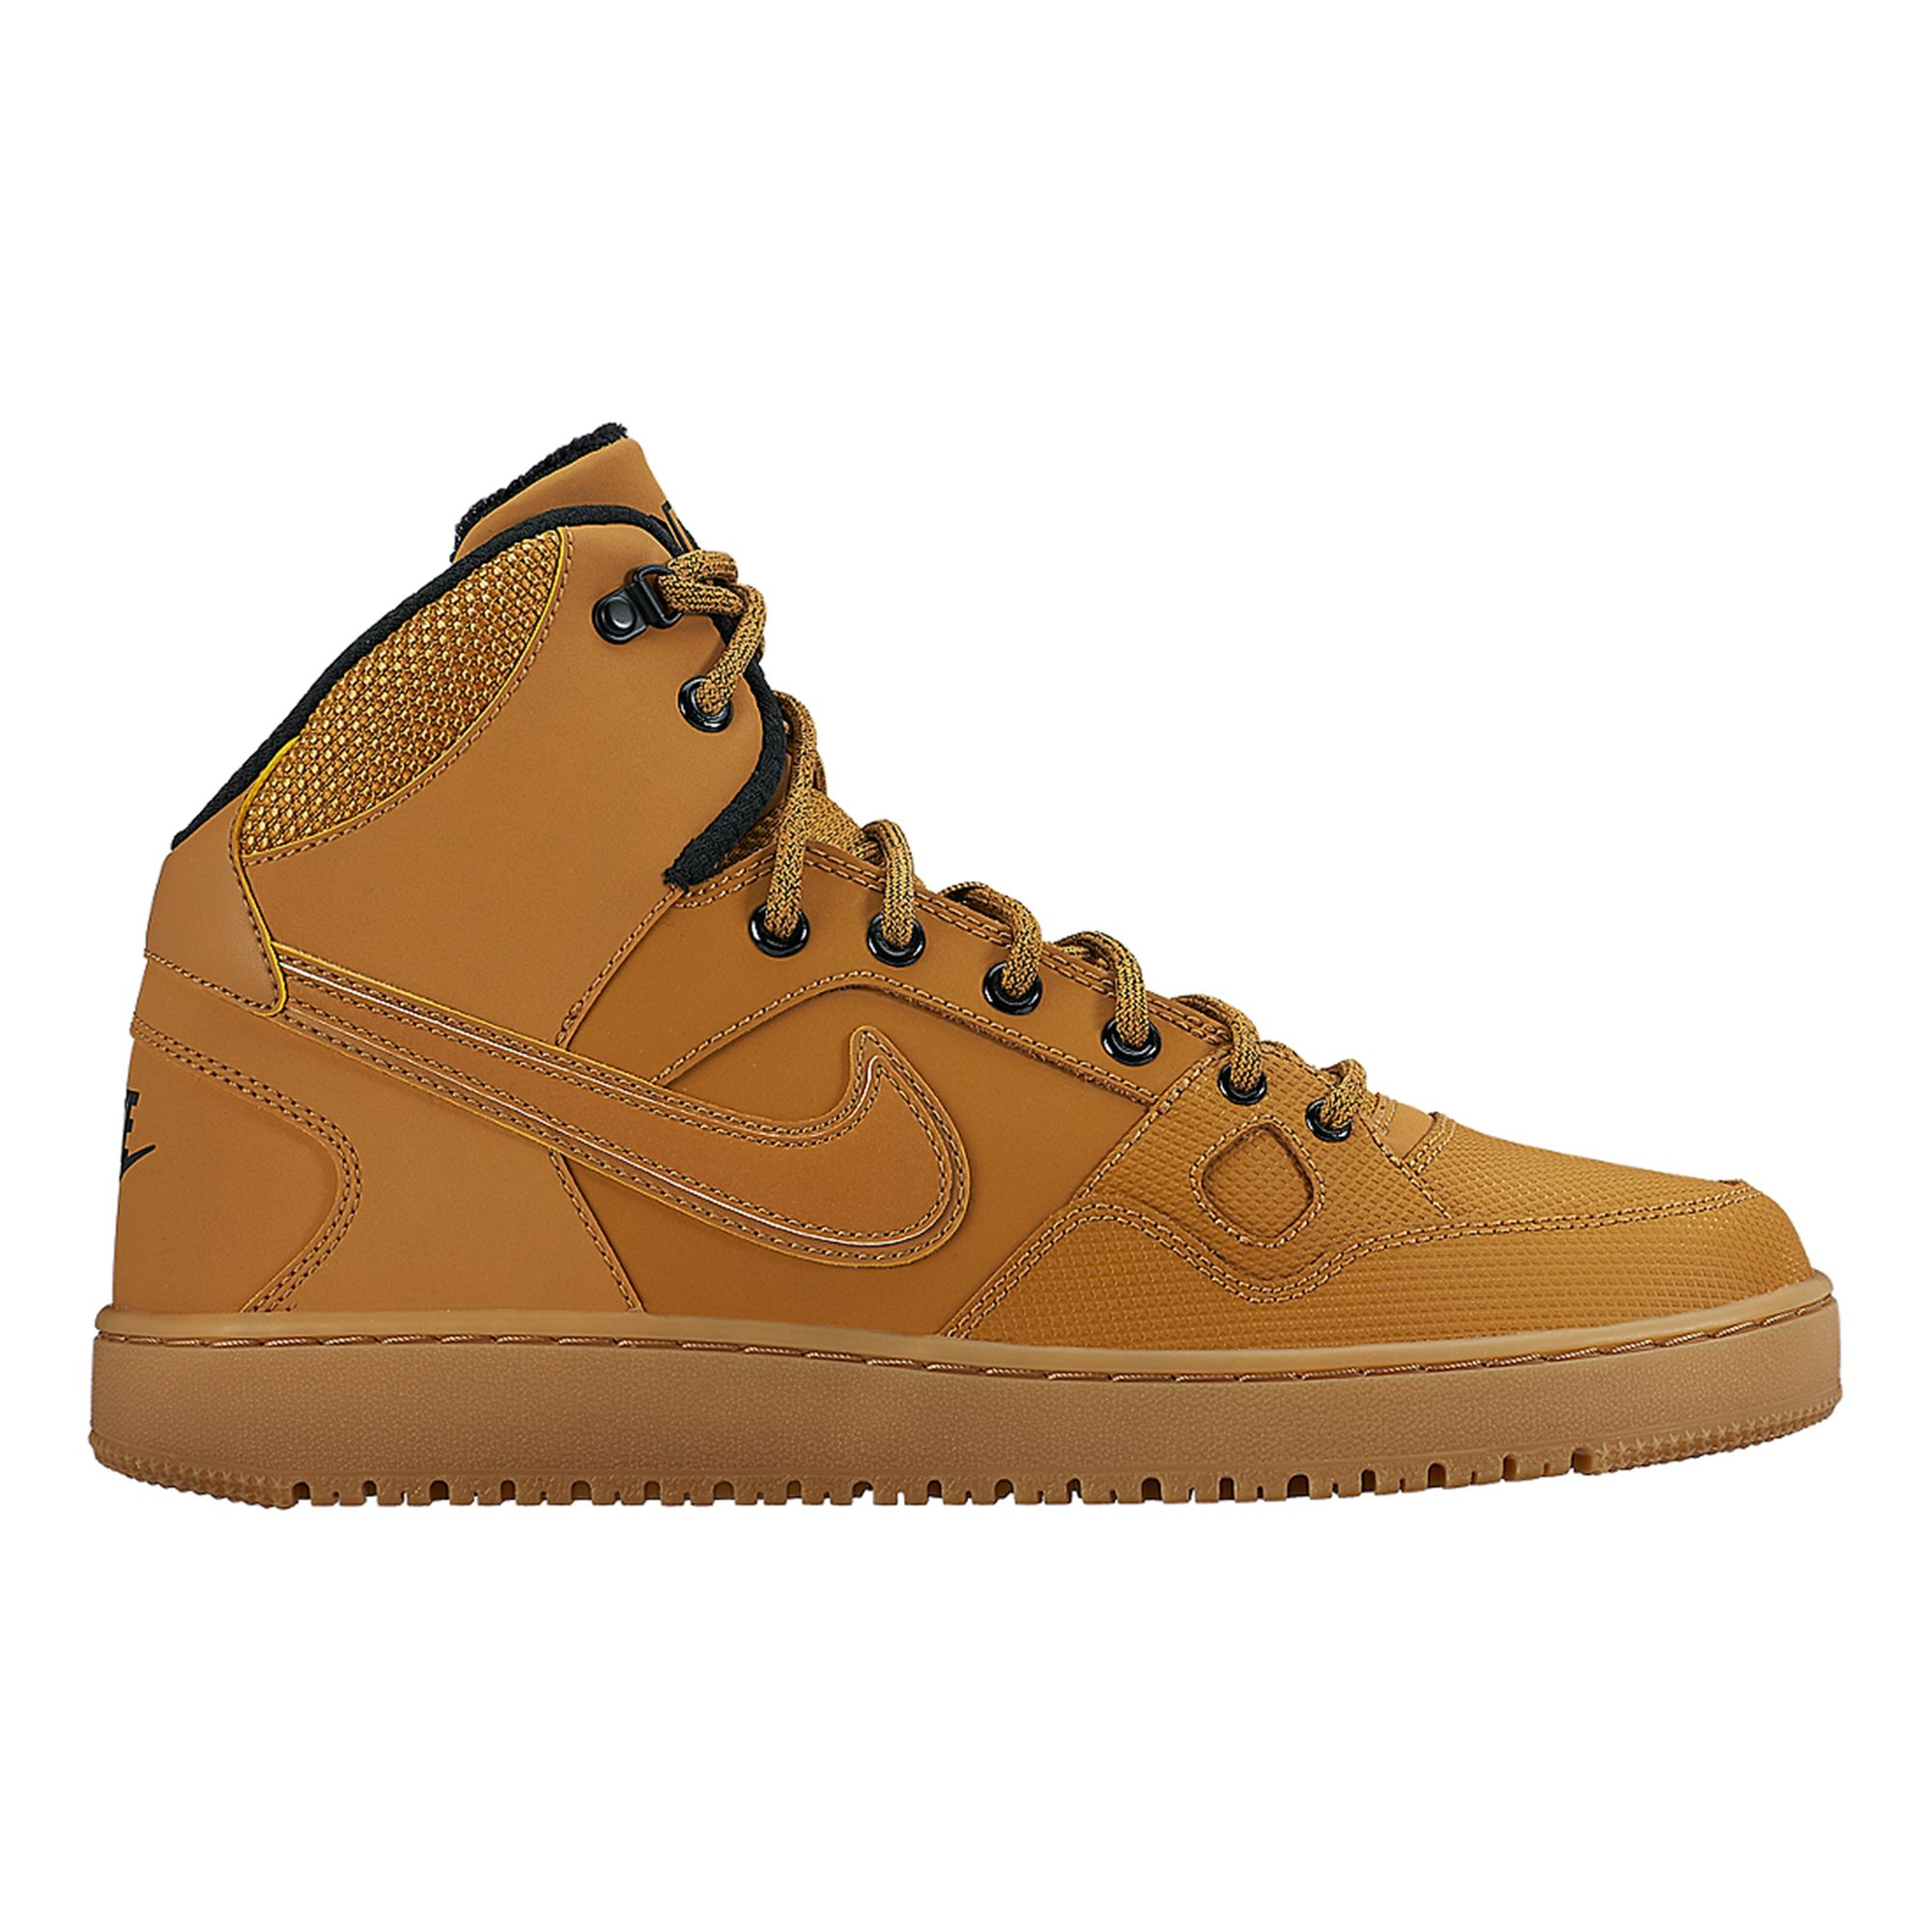 2058a5ac00 Tênis Nike Son Of Force Mid Winter Masculino - Nike no Nike.com.br